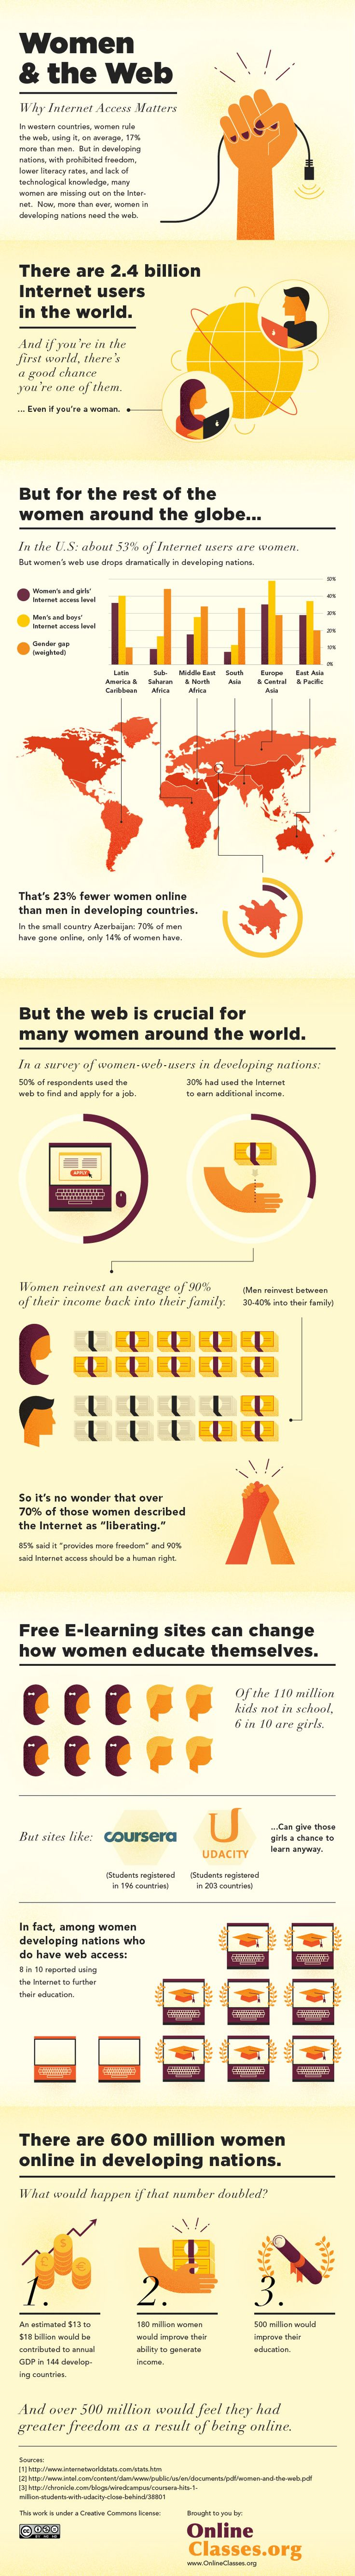 Women and the Web: Why Internet Access Matters